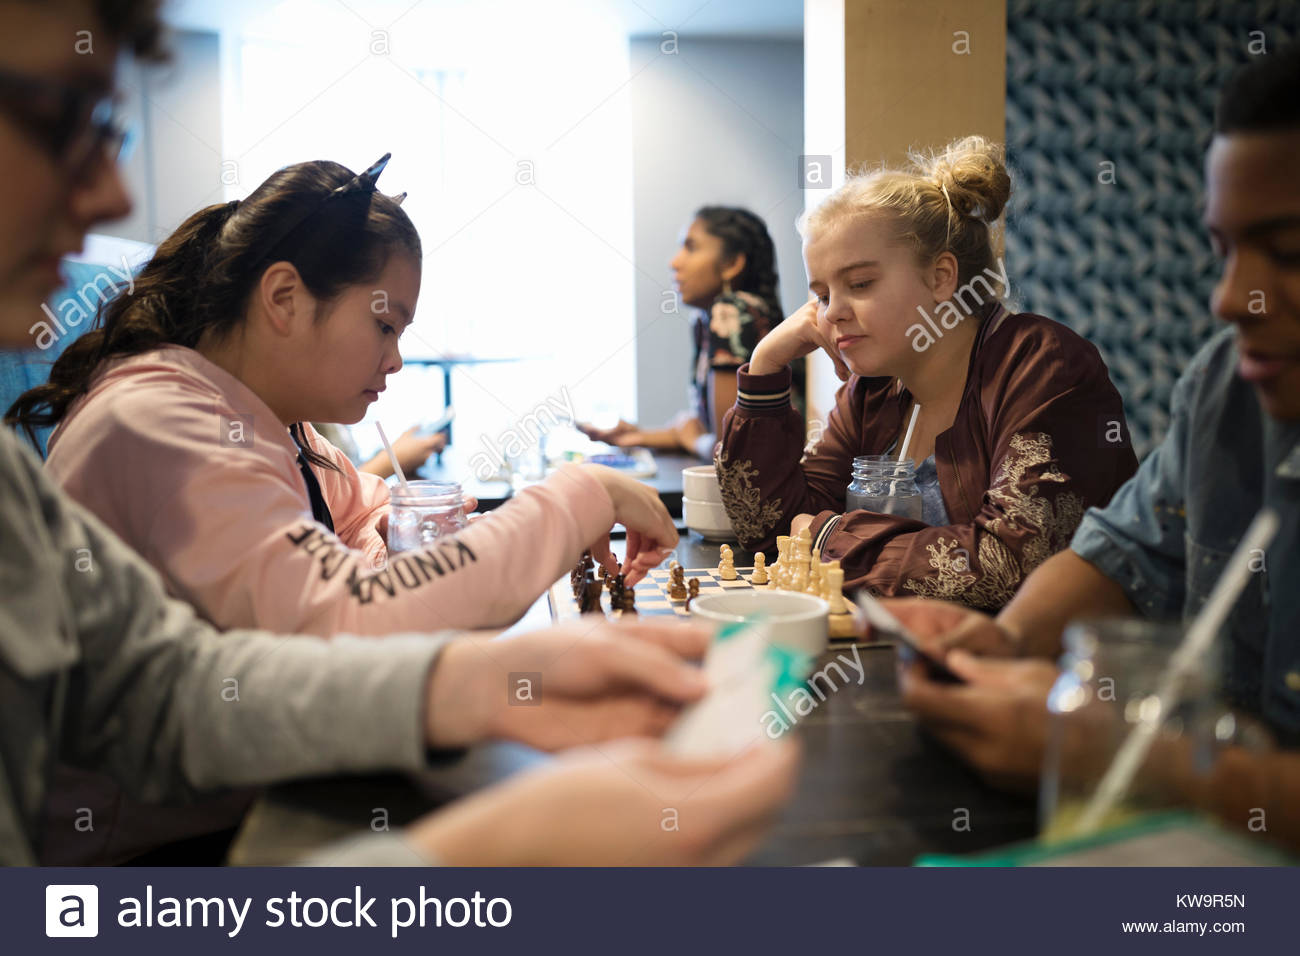 Tween girl friends playing chess at cafe table - Stock Image